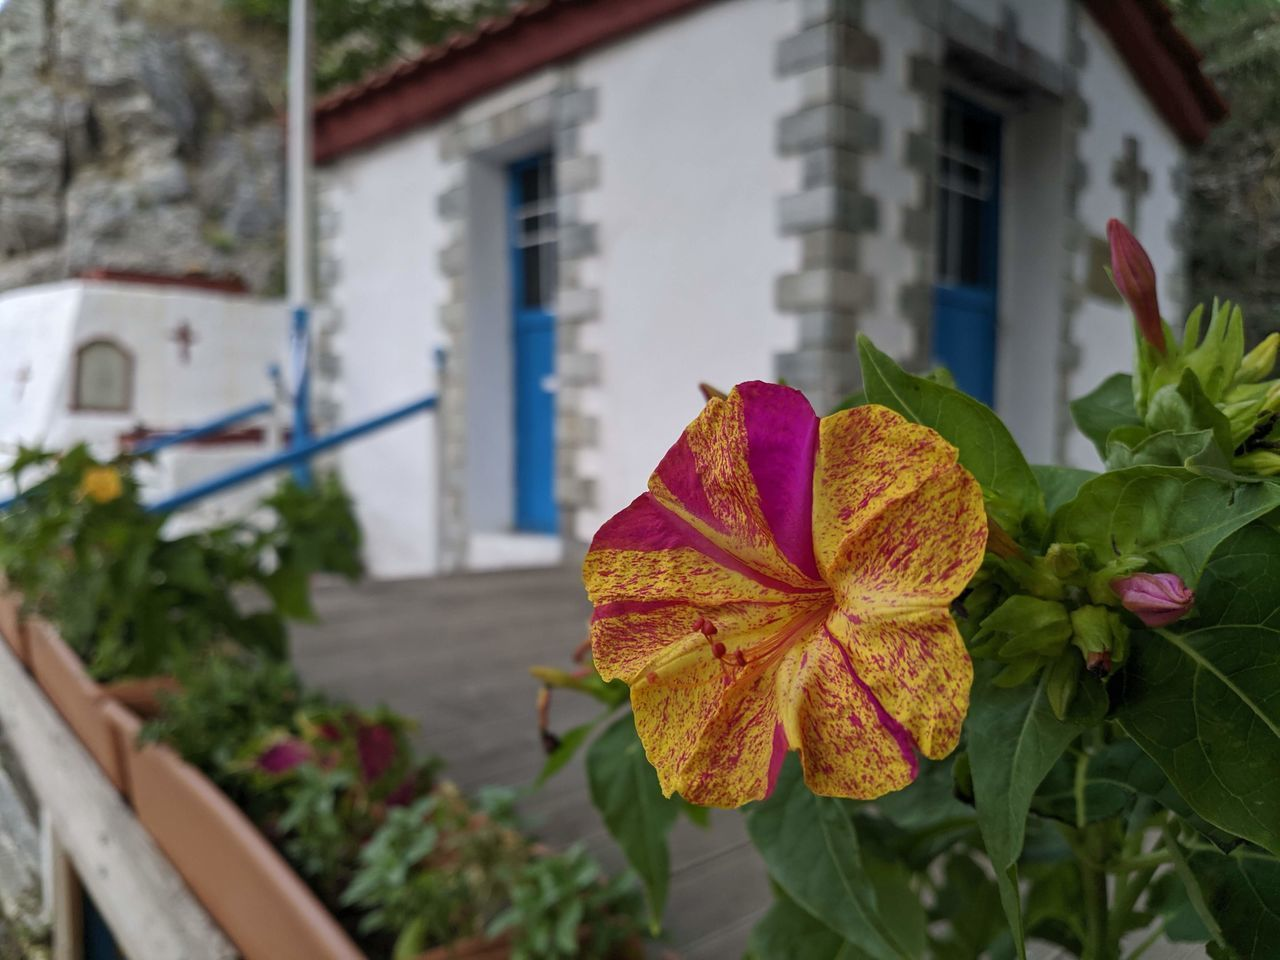 CLOSE-UP OF FLOWERING PLANT AGAINST BUILDINGS